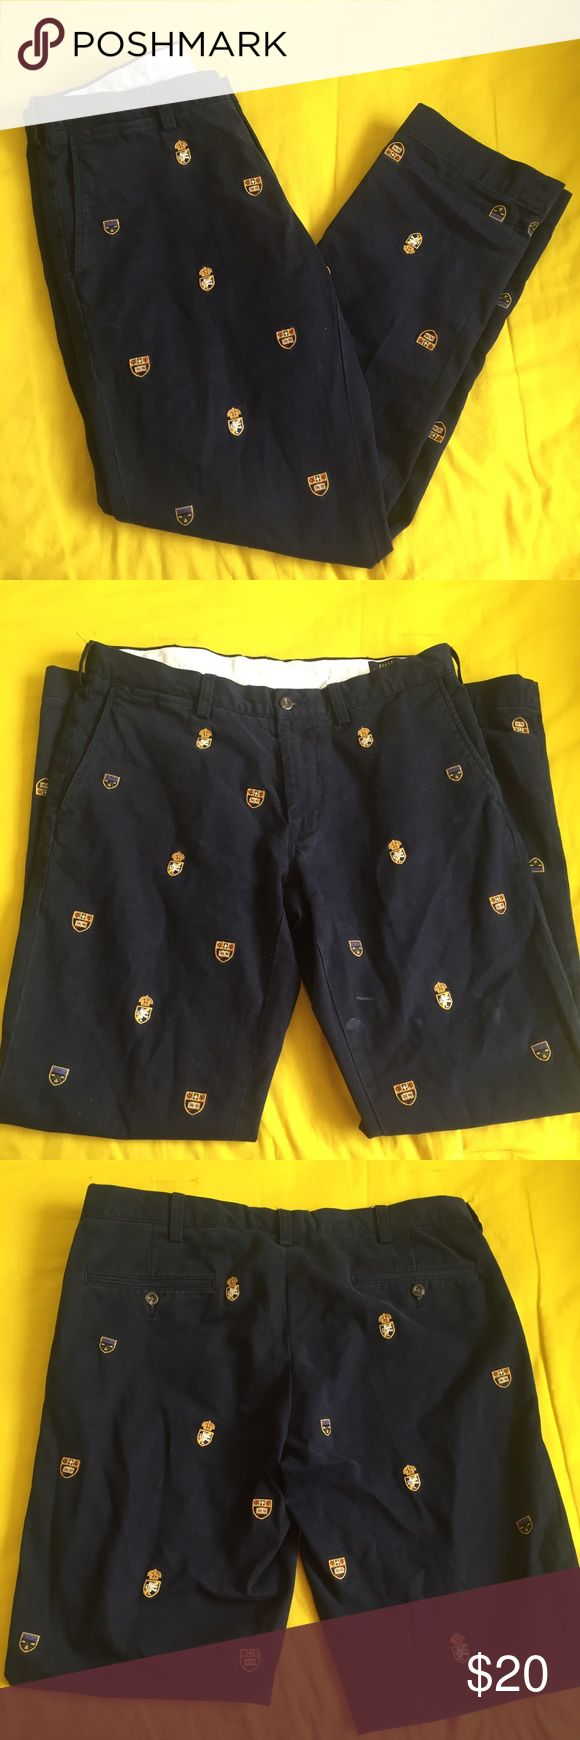 POLO Ralph Lauren Navy SLIM Fit Embroidered Pants Men's pants. Size 34/32 Polo by Ralph Lauren Pants Dress